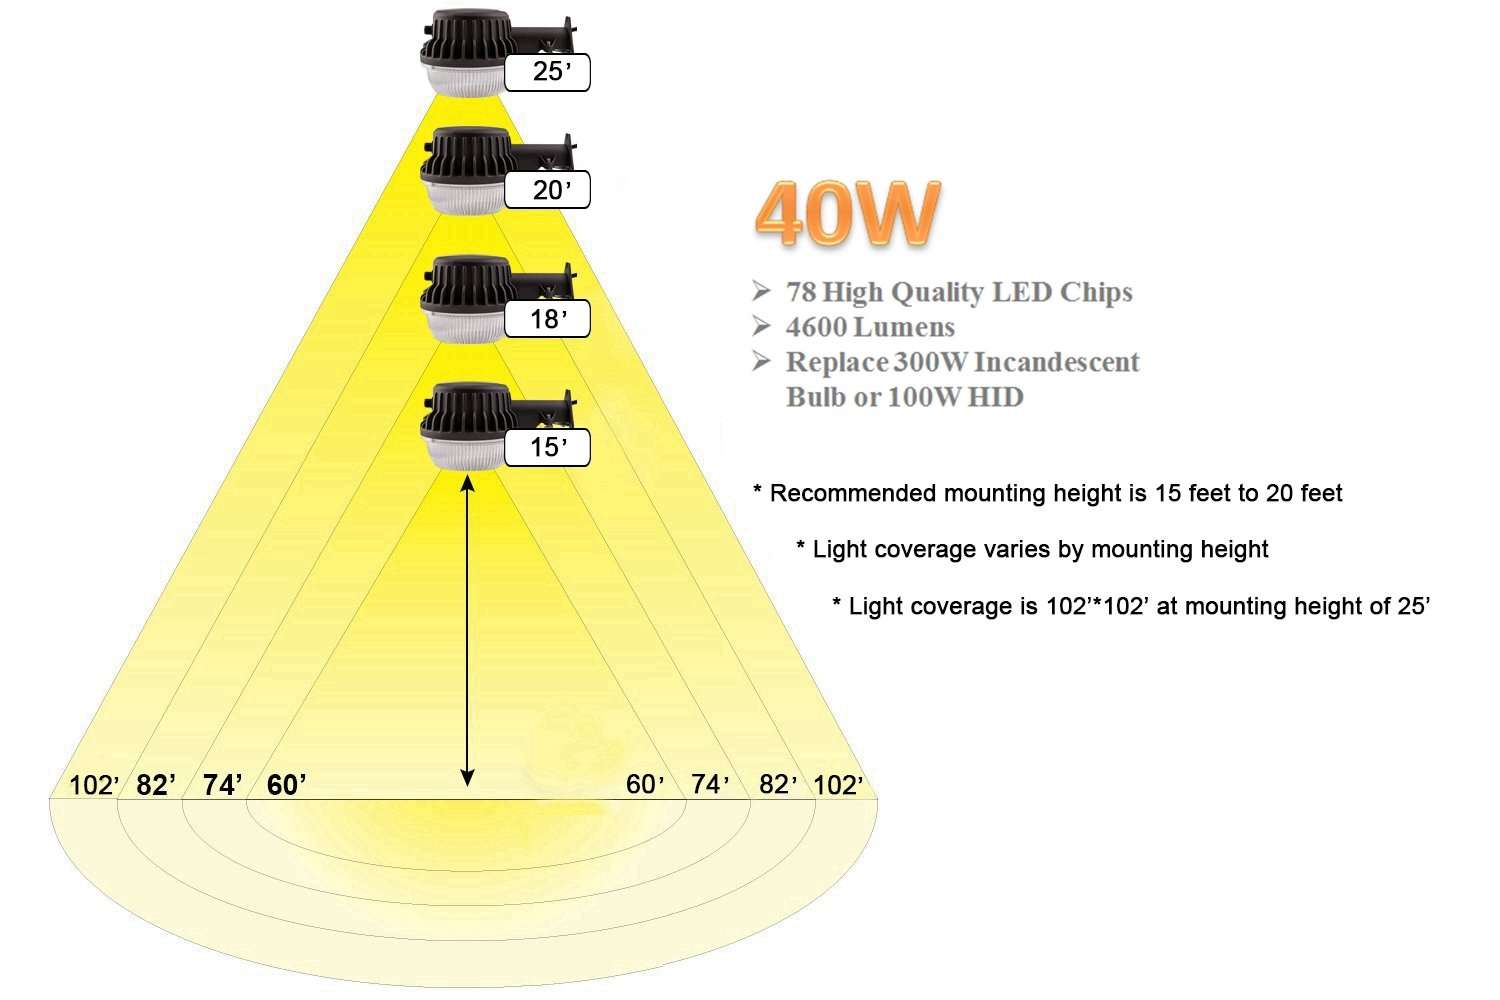 Led Area Light 40 Watts Dusk To Dawn Photocell Included 5000k Photo Cell Wiring Diagram Mercury Vapor Daylight 4600lm Perfect Yard Or Barn Etl Listed 300w Incandescent 100w Hid